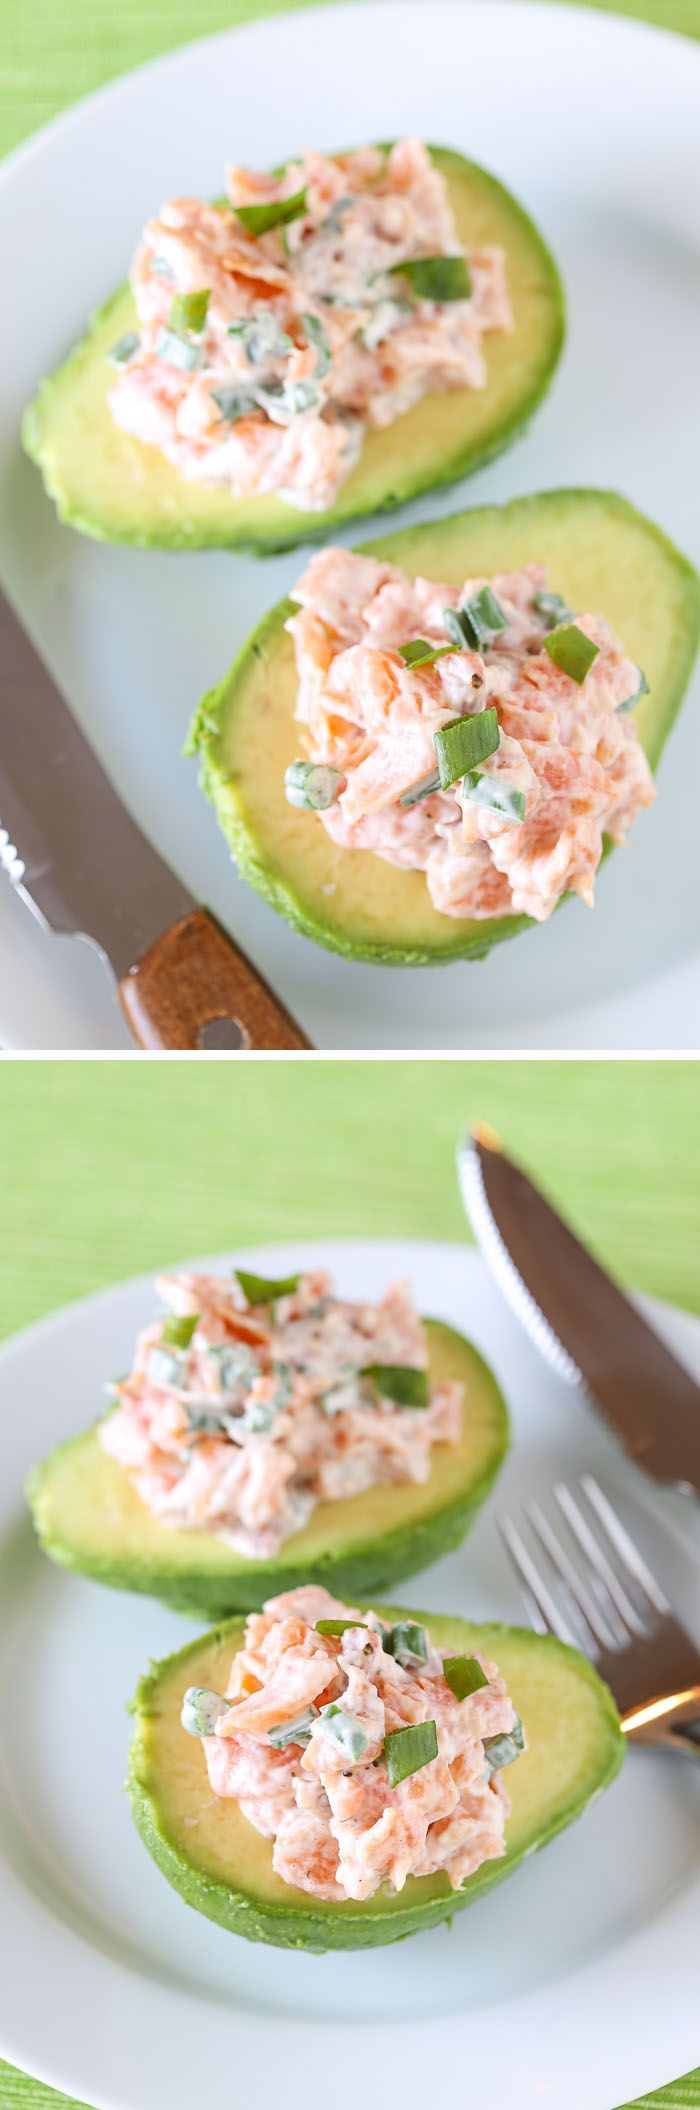 Smoked salmon salad in avocado boats salmon avocado lunch nice smoked salmon salad in avocado boats willow bird baking mayo ccuart Image collections